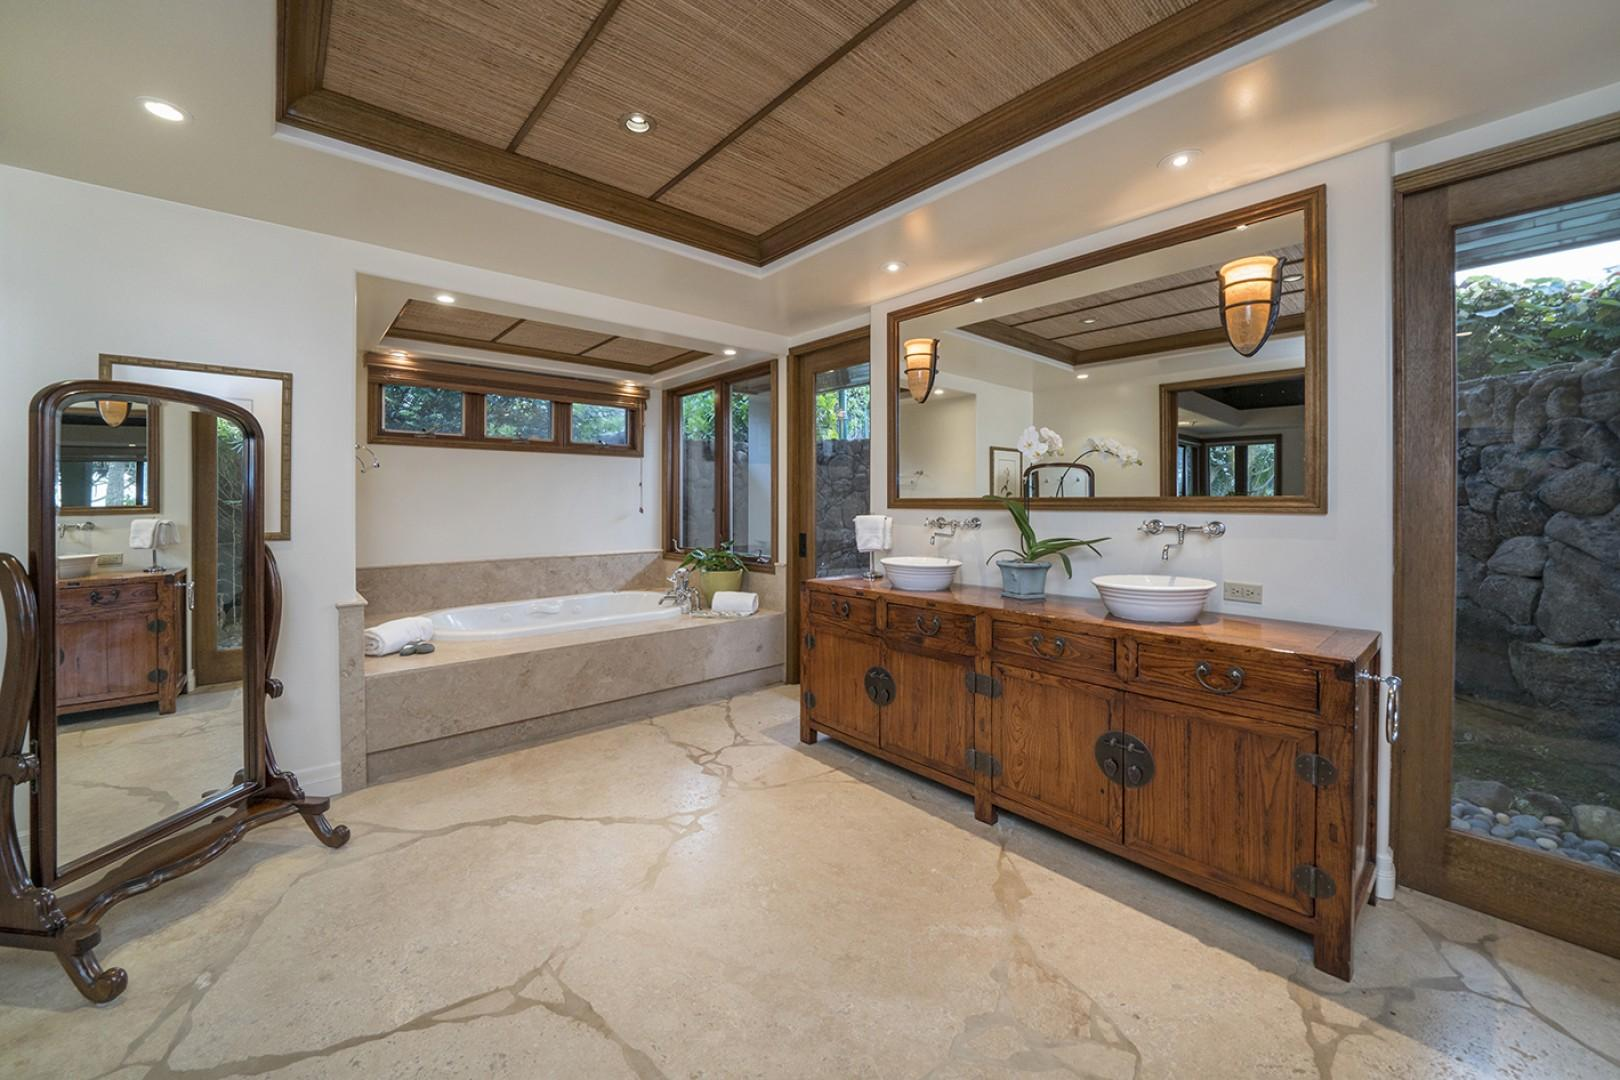 Guest house: Master Bathroom with jetted tub and outdoor shower.